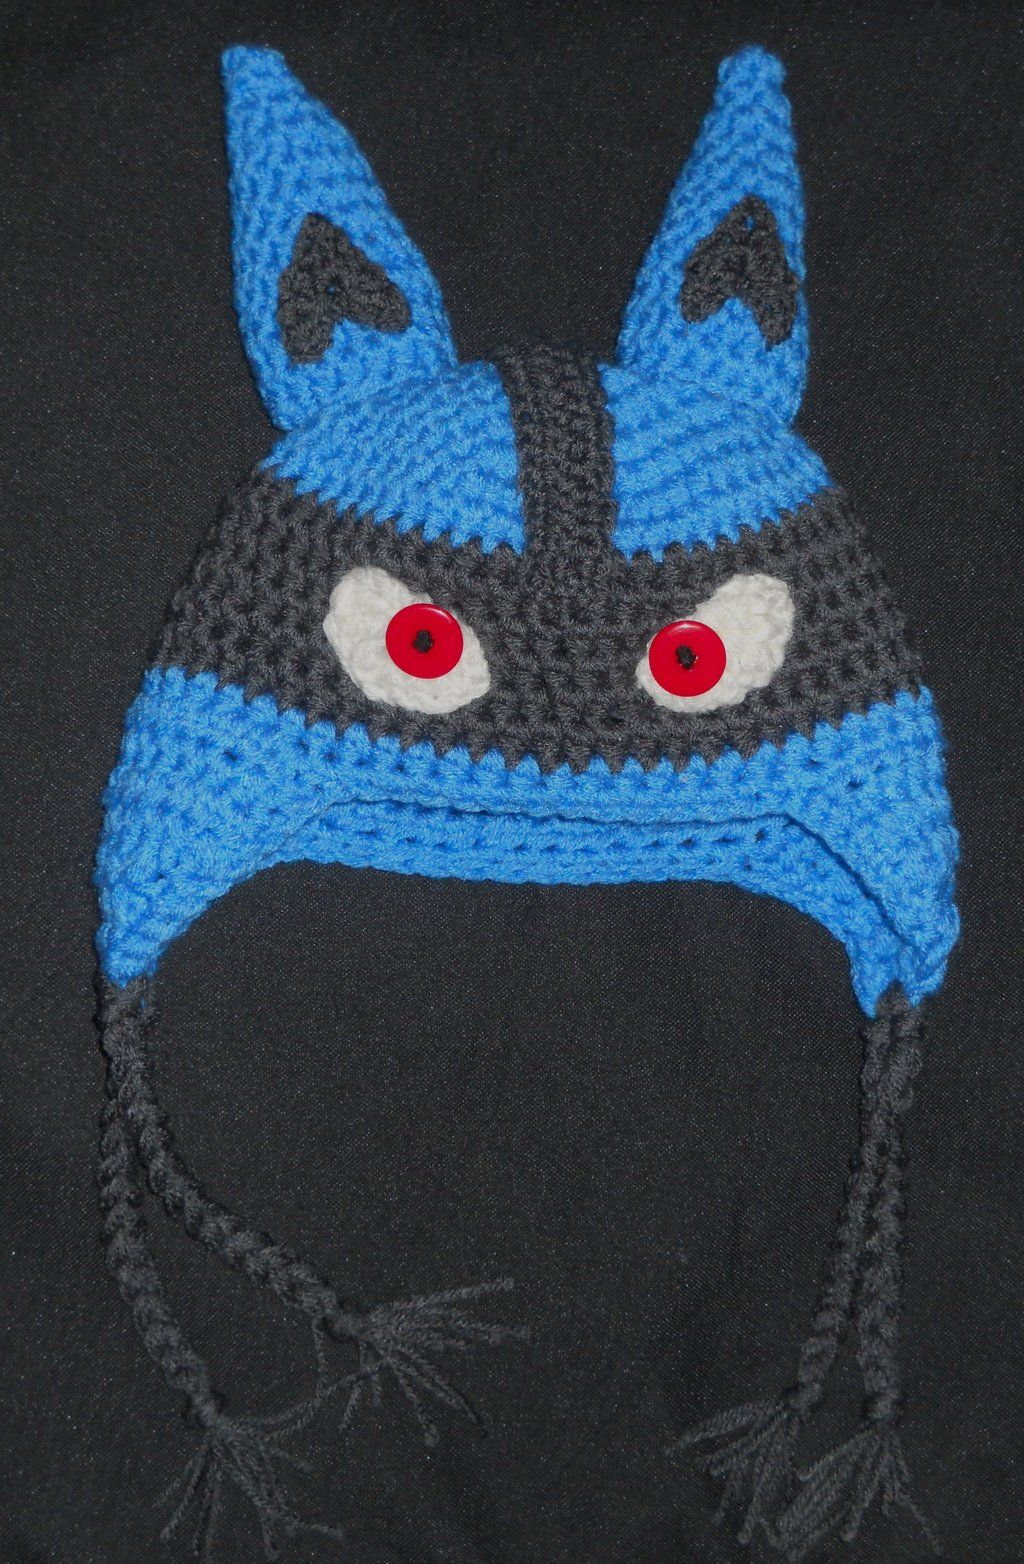 lucario_hat_commission_by_distraction_number_4-d5vodh9.jpg 1,024 ...